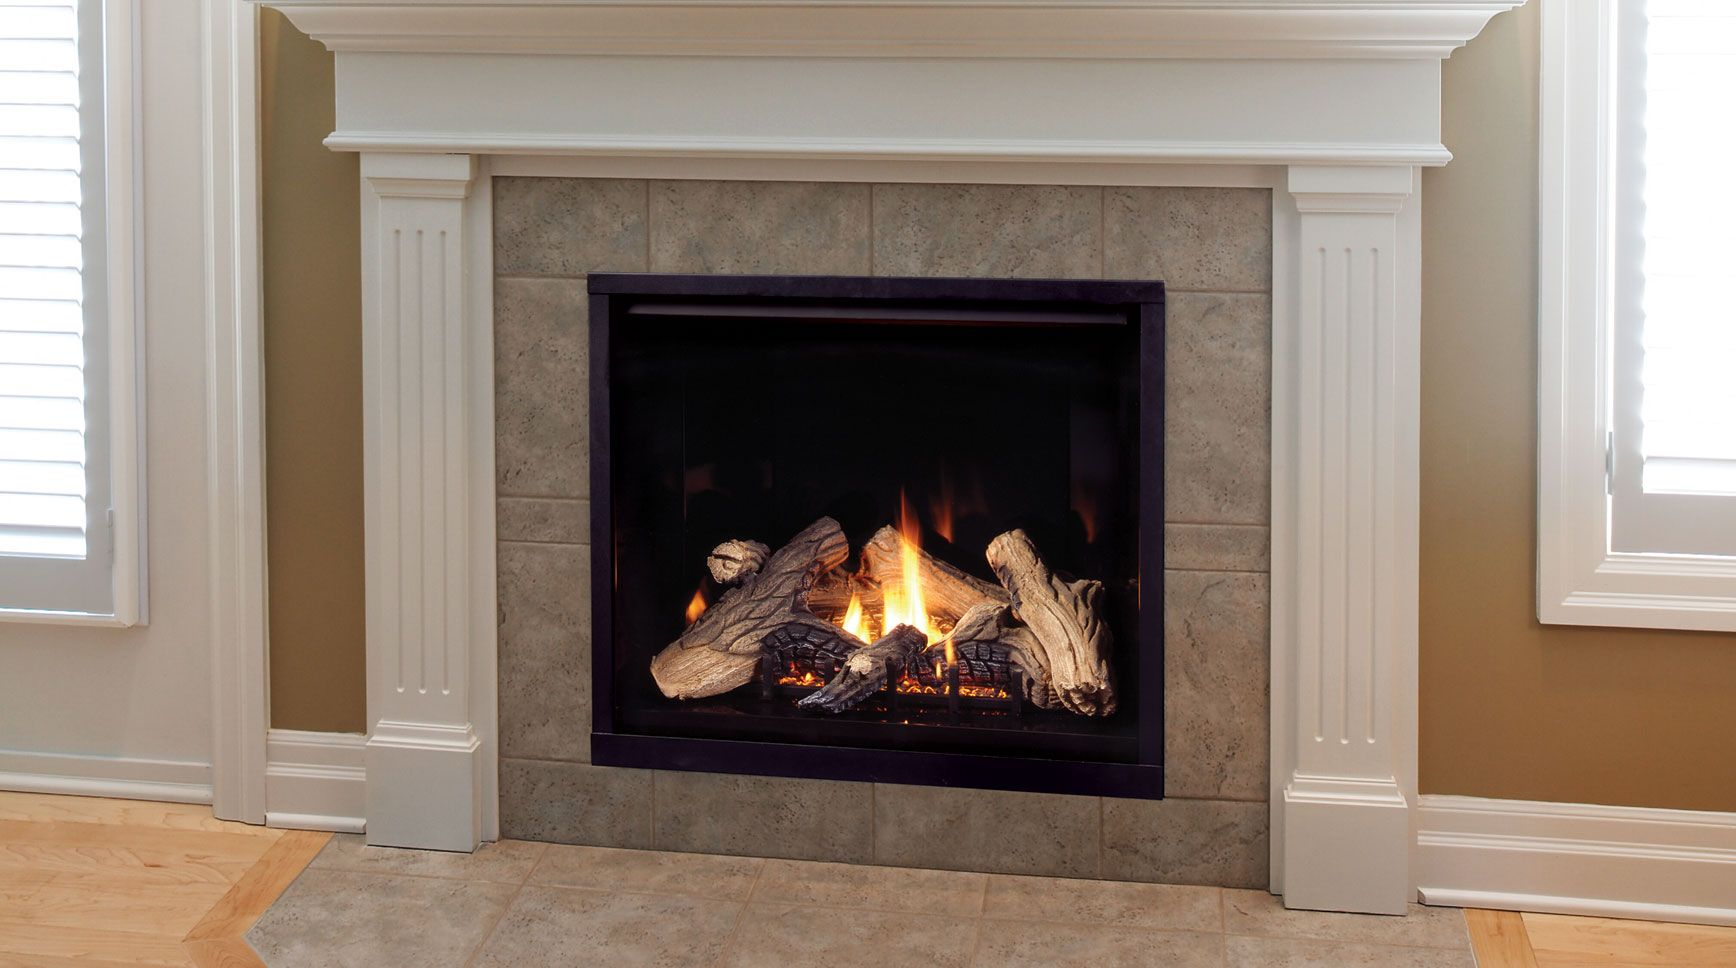 Gas fireplaces come in vented or nonvented systems. Not